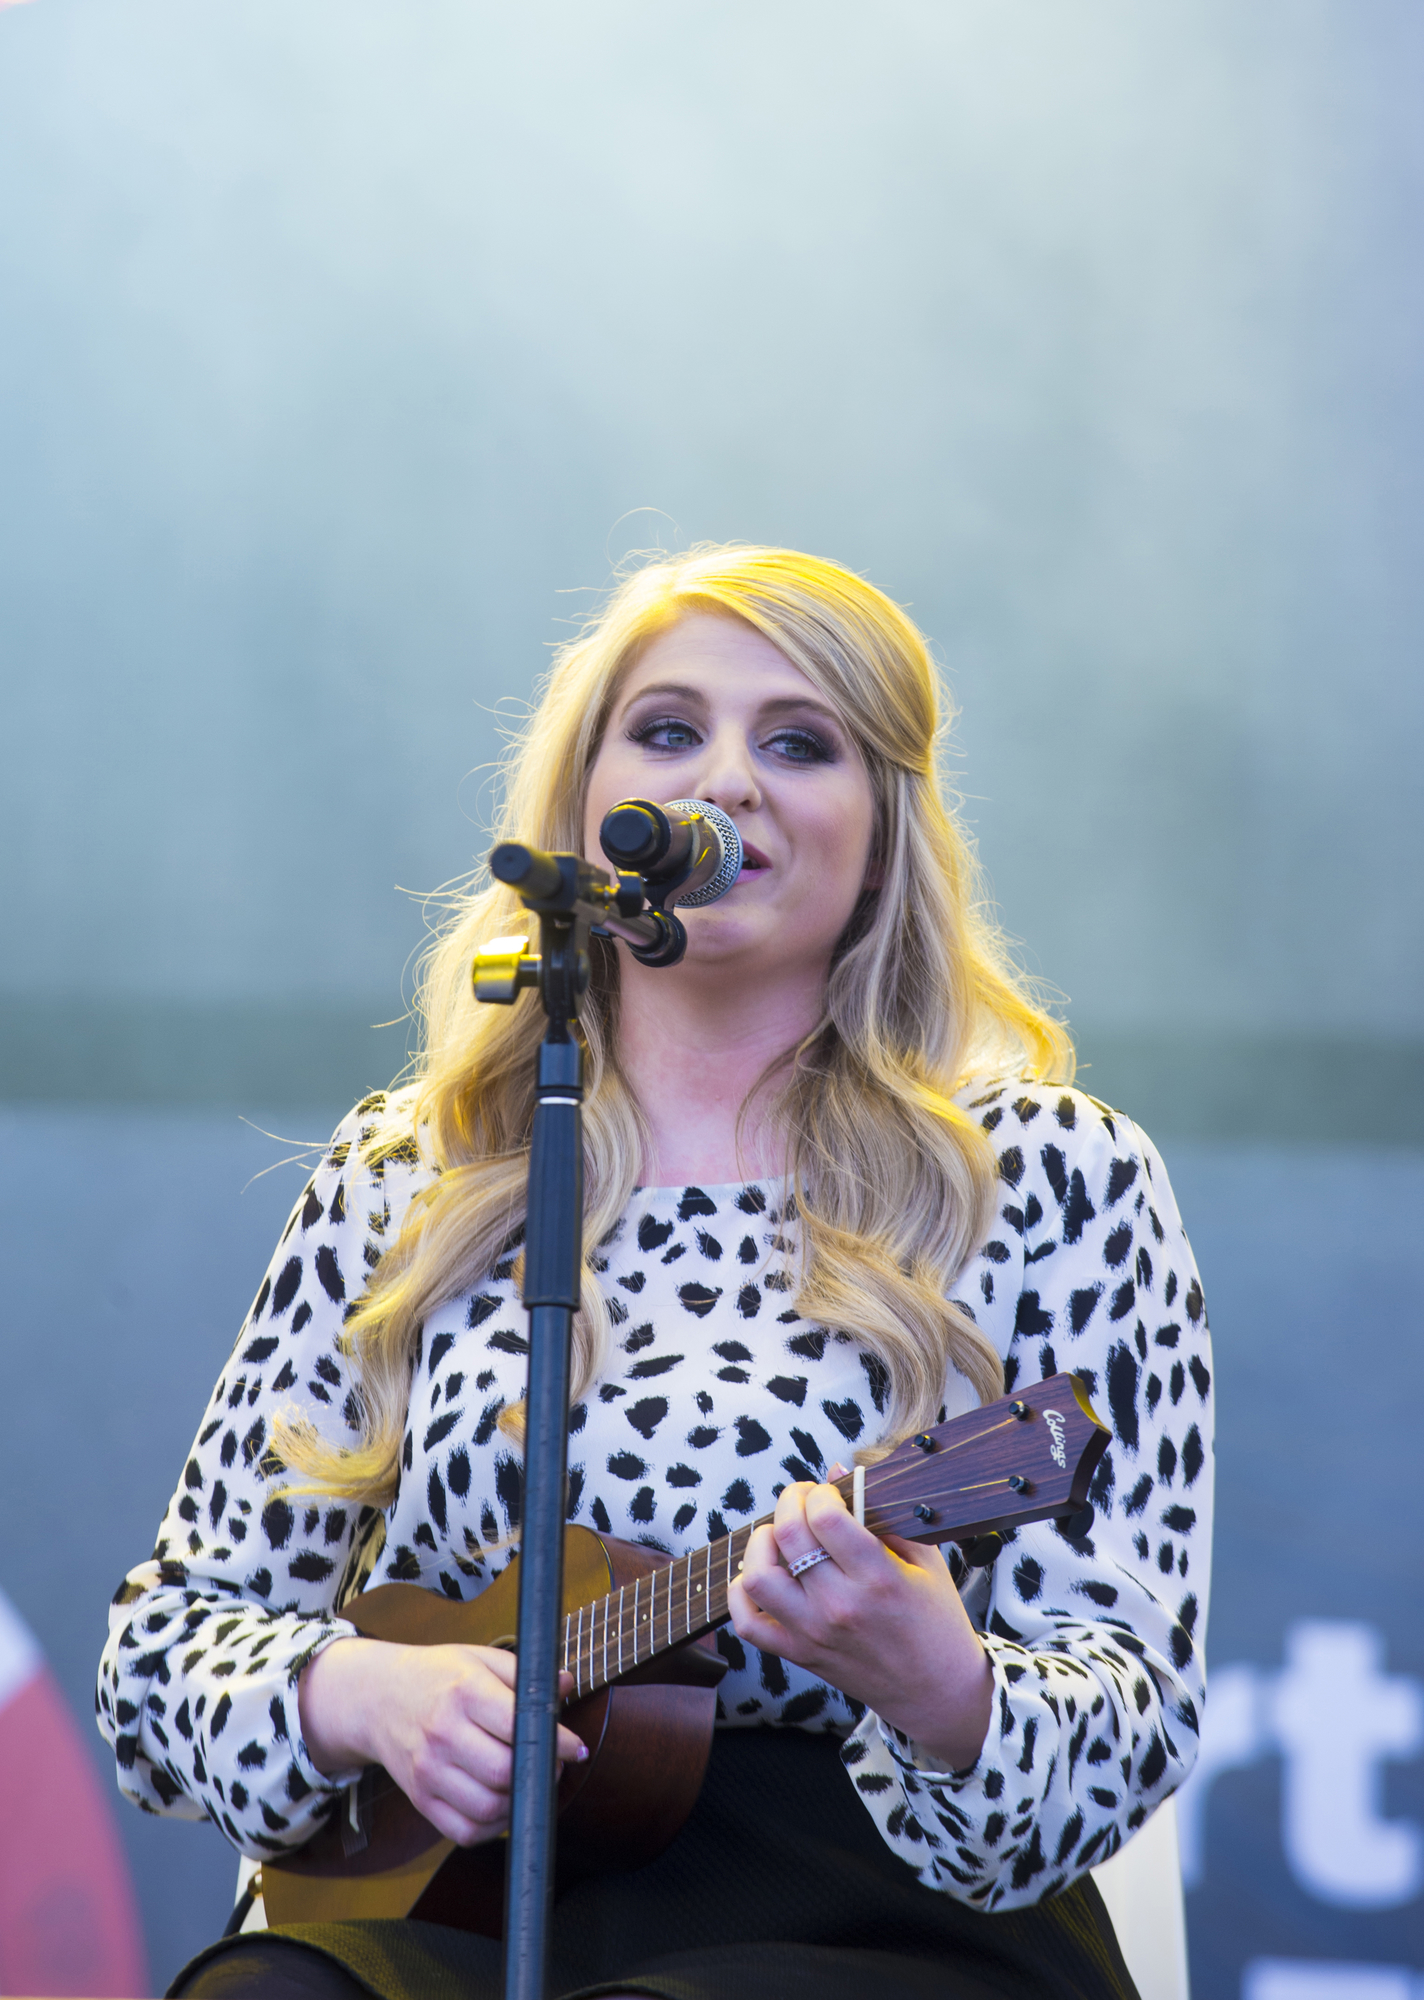 Meghan Trainor biography